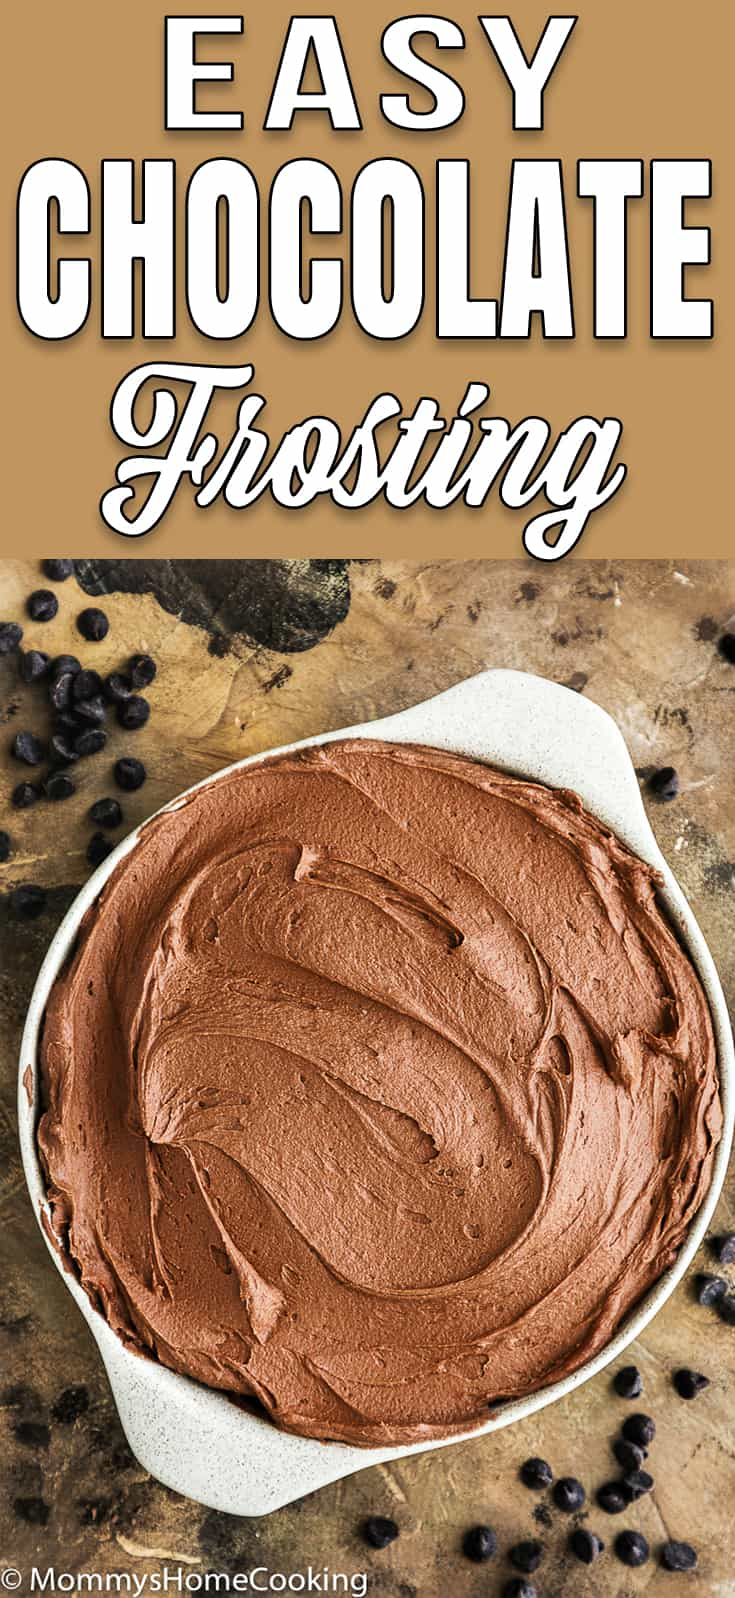 smooth chocolate frosting in a bowl with descriptive text